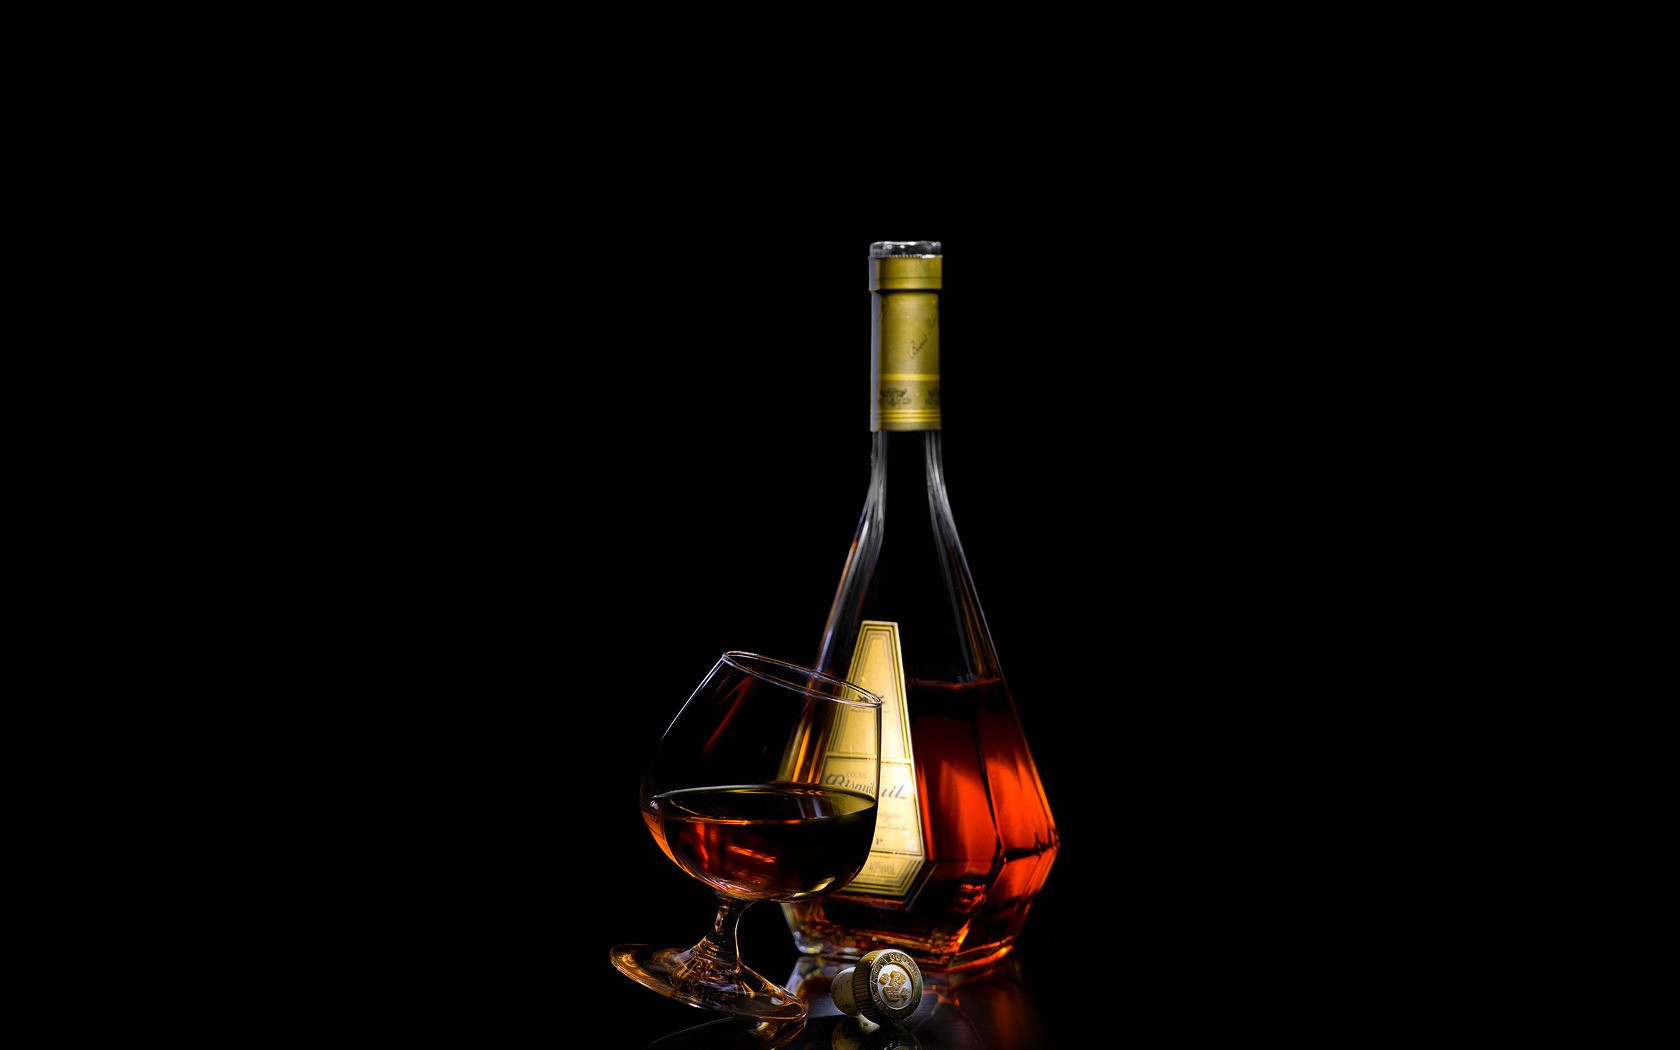 liquor bottles wallpaper - photo #26